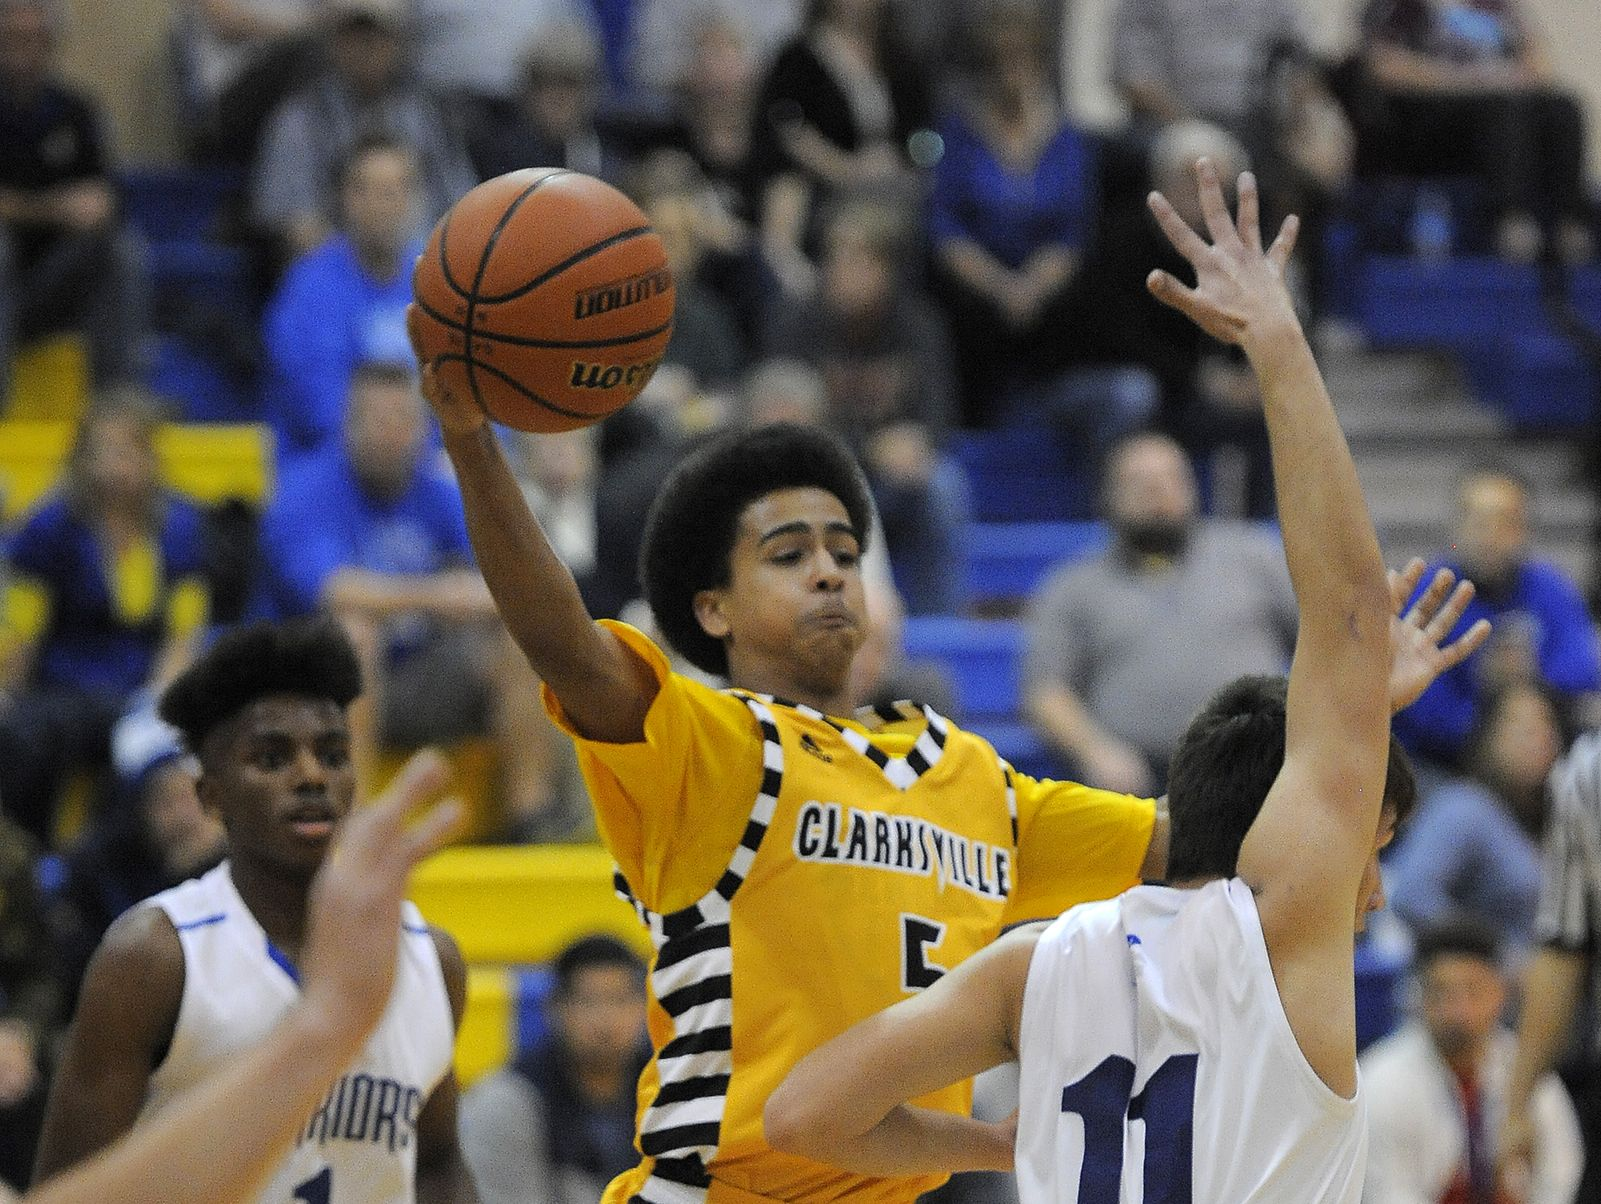 Clarksville's Charles VanWinkle (5) looks to pass against Christian Academy on Tuesday at Christian Academy High School.